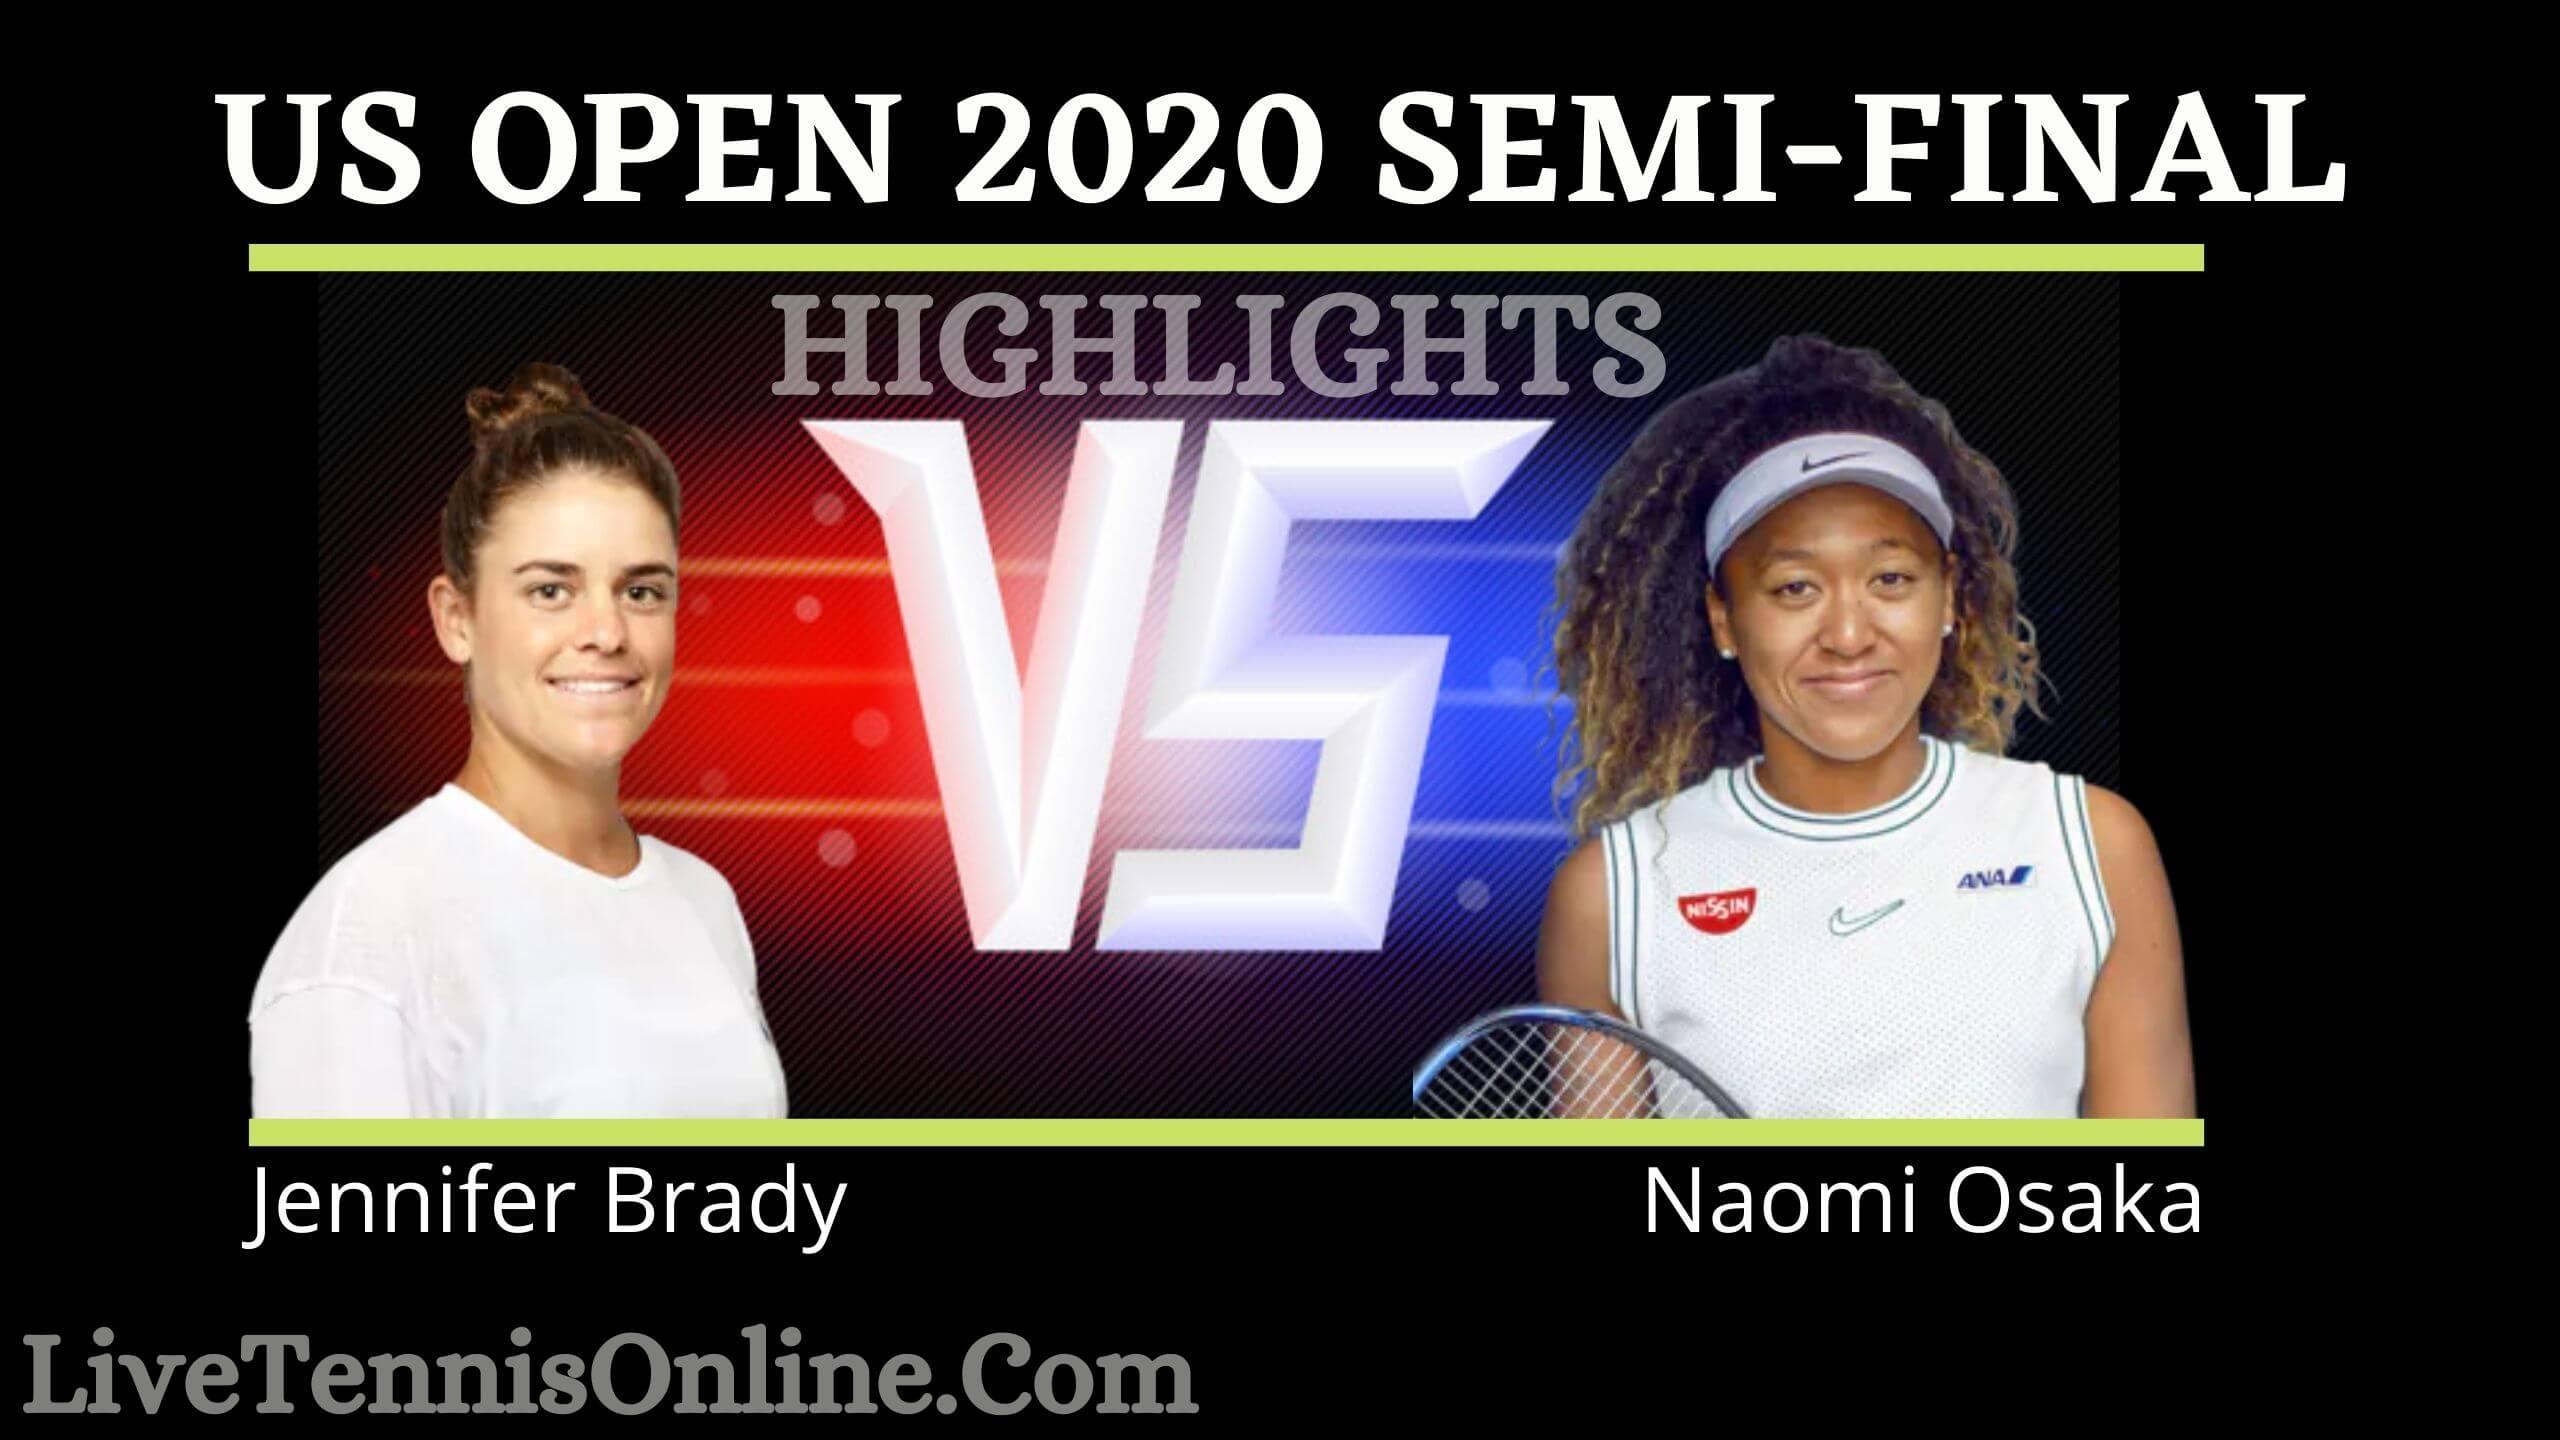 Brady Vs Osaka US Open 2020 Semi Final Highlights